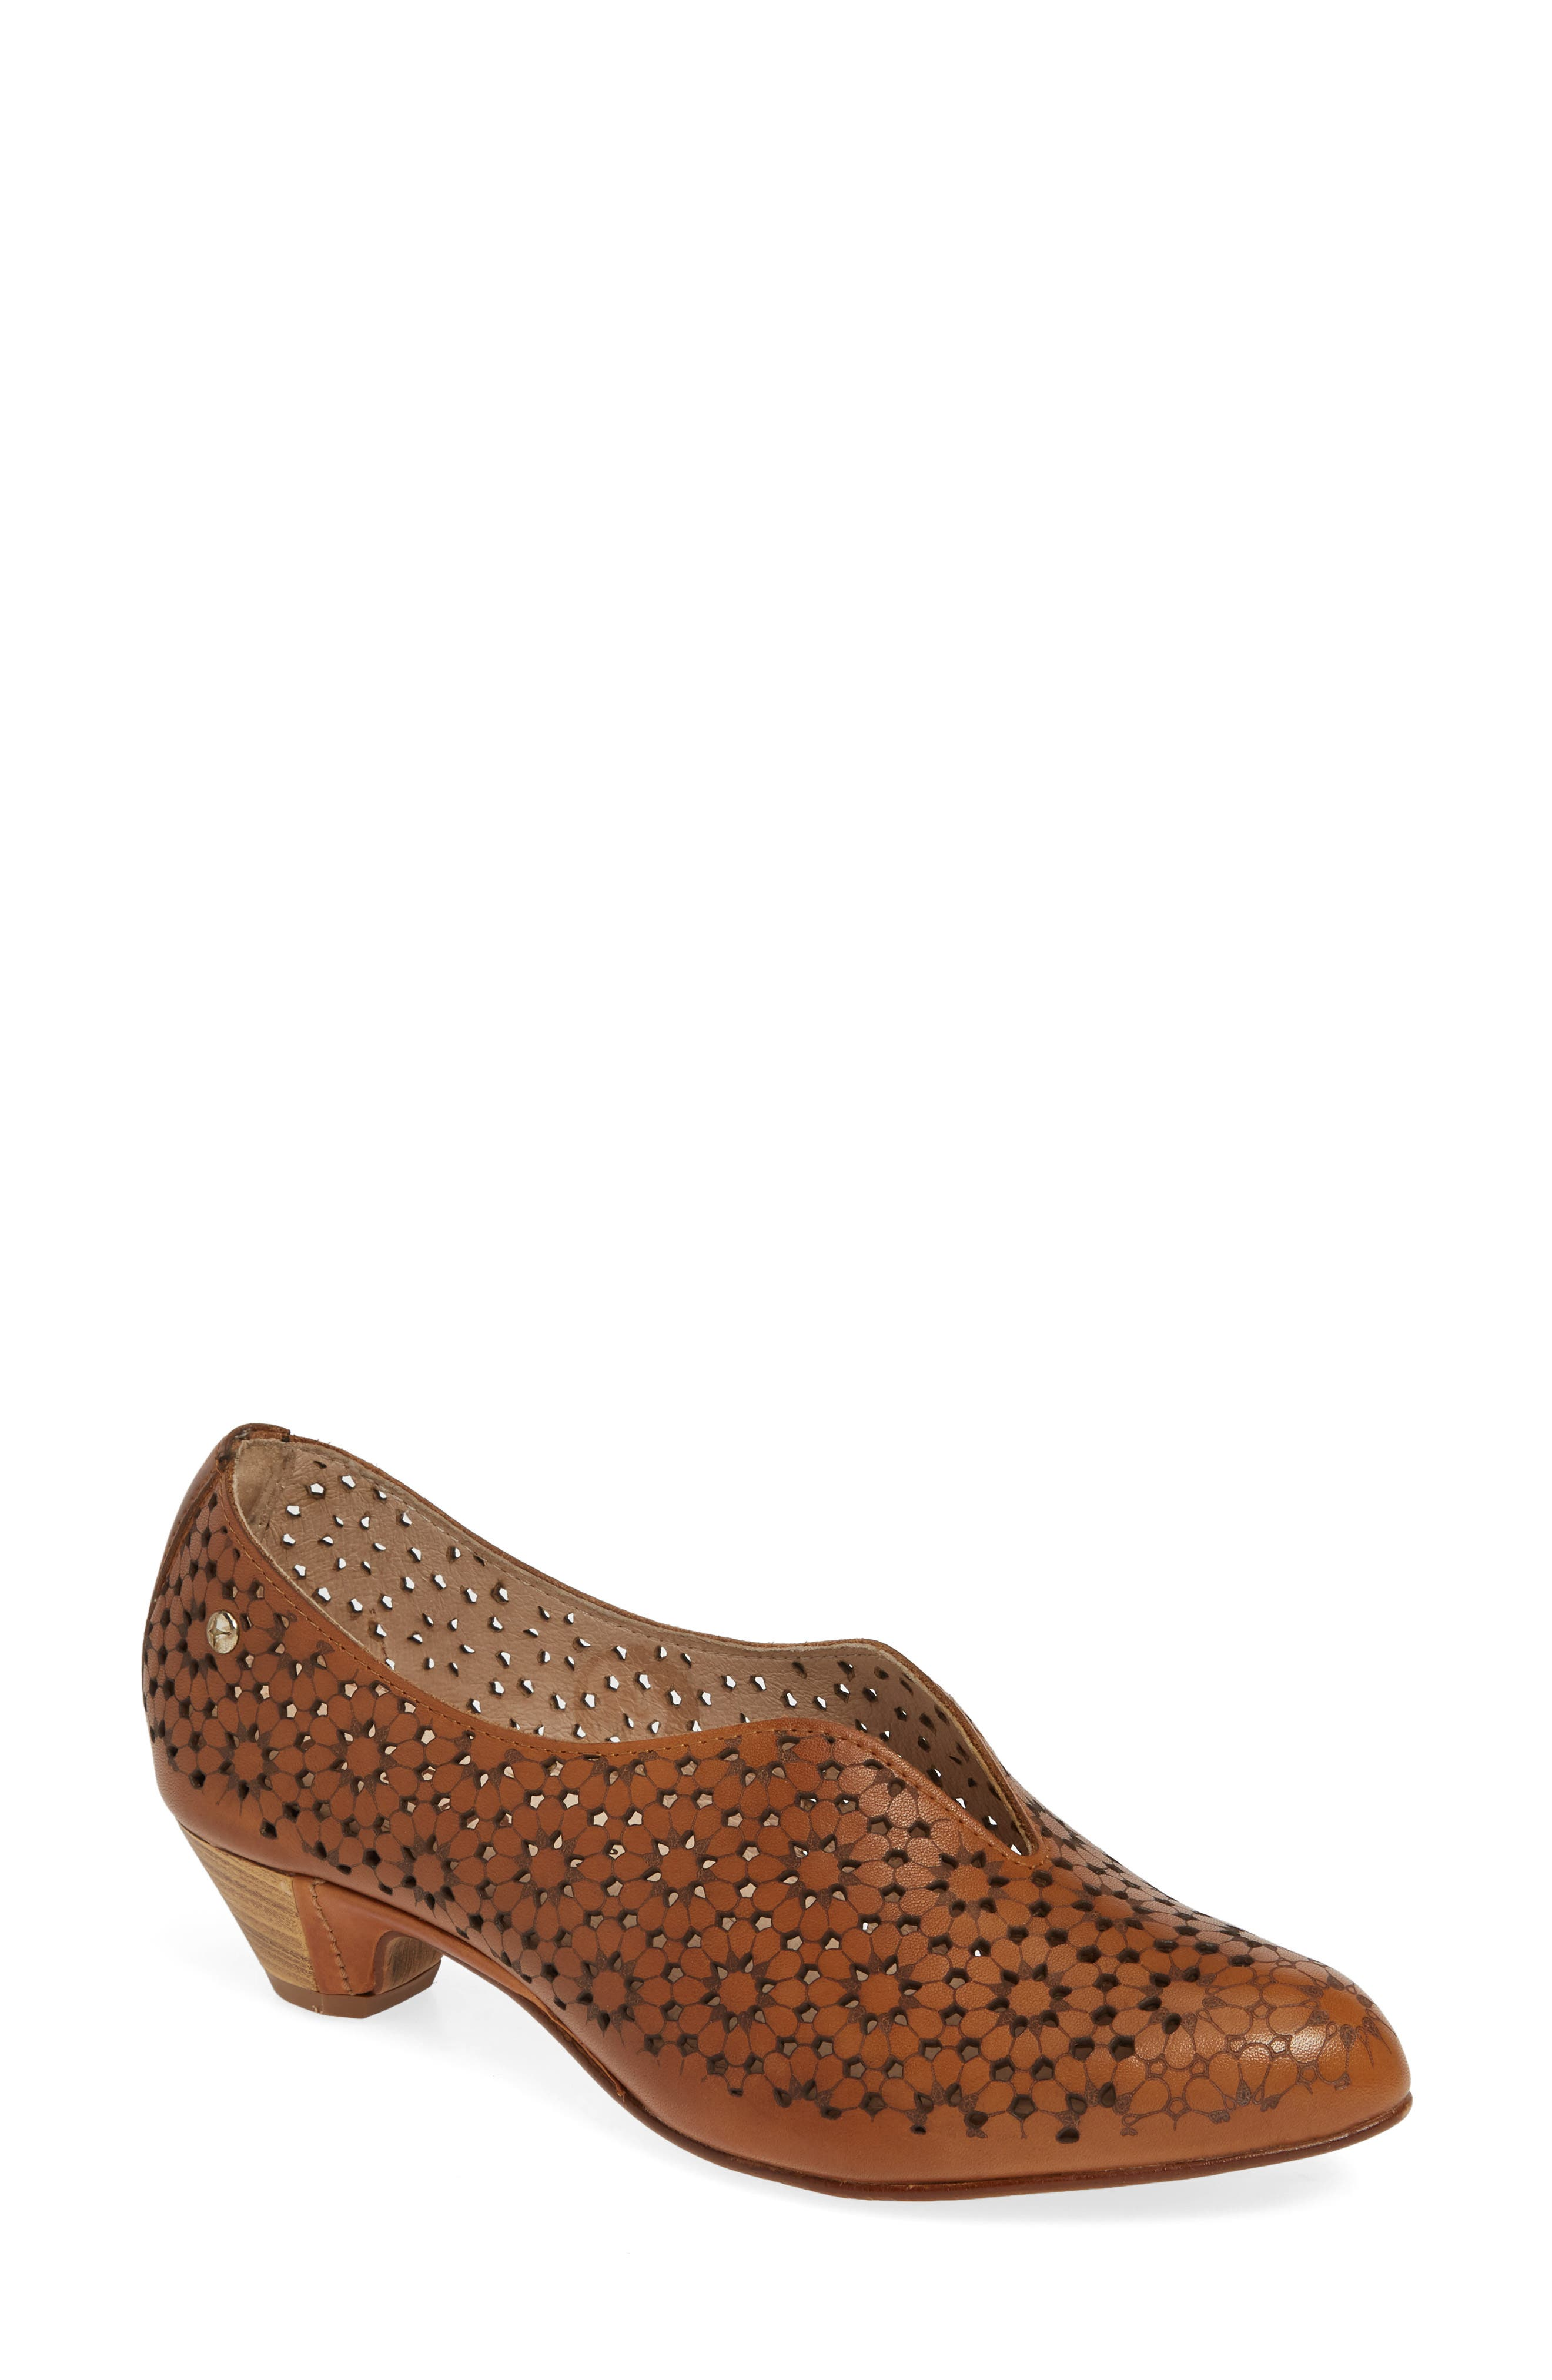 Pikolinos Elba Perforated Floral Pump, Brown